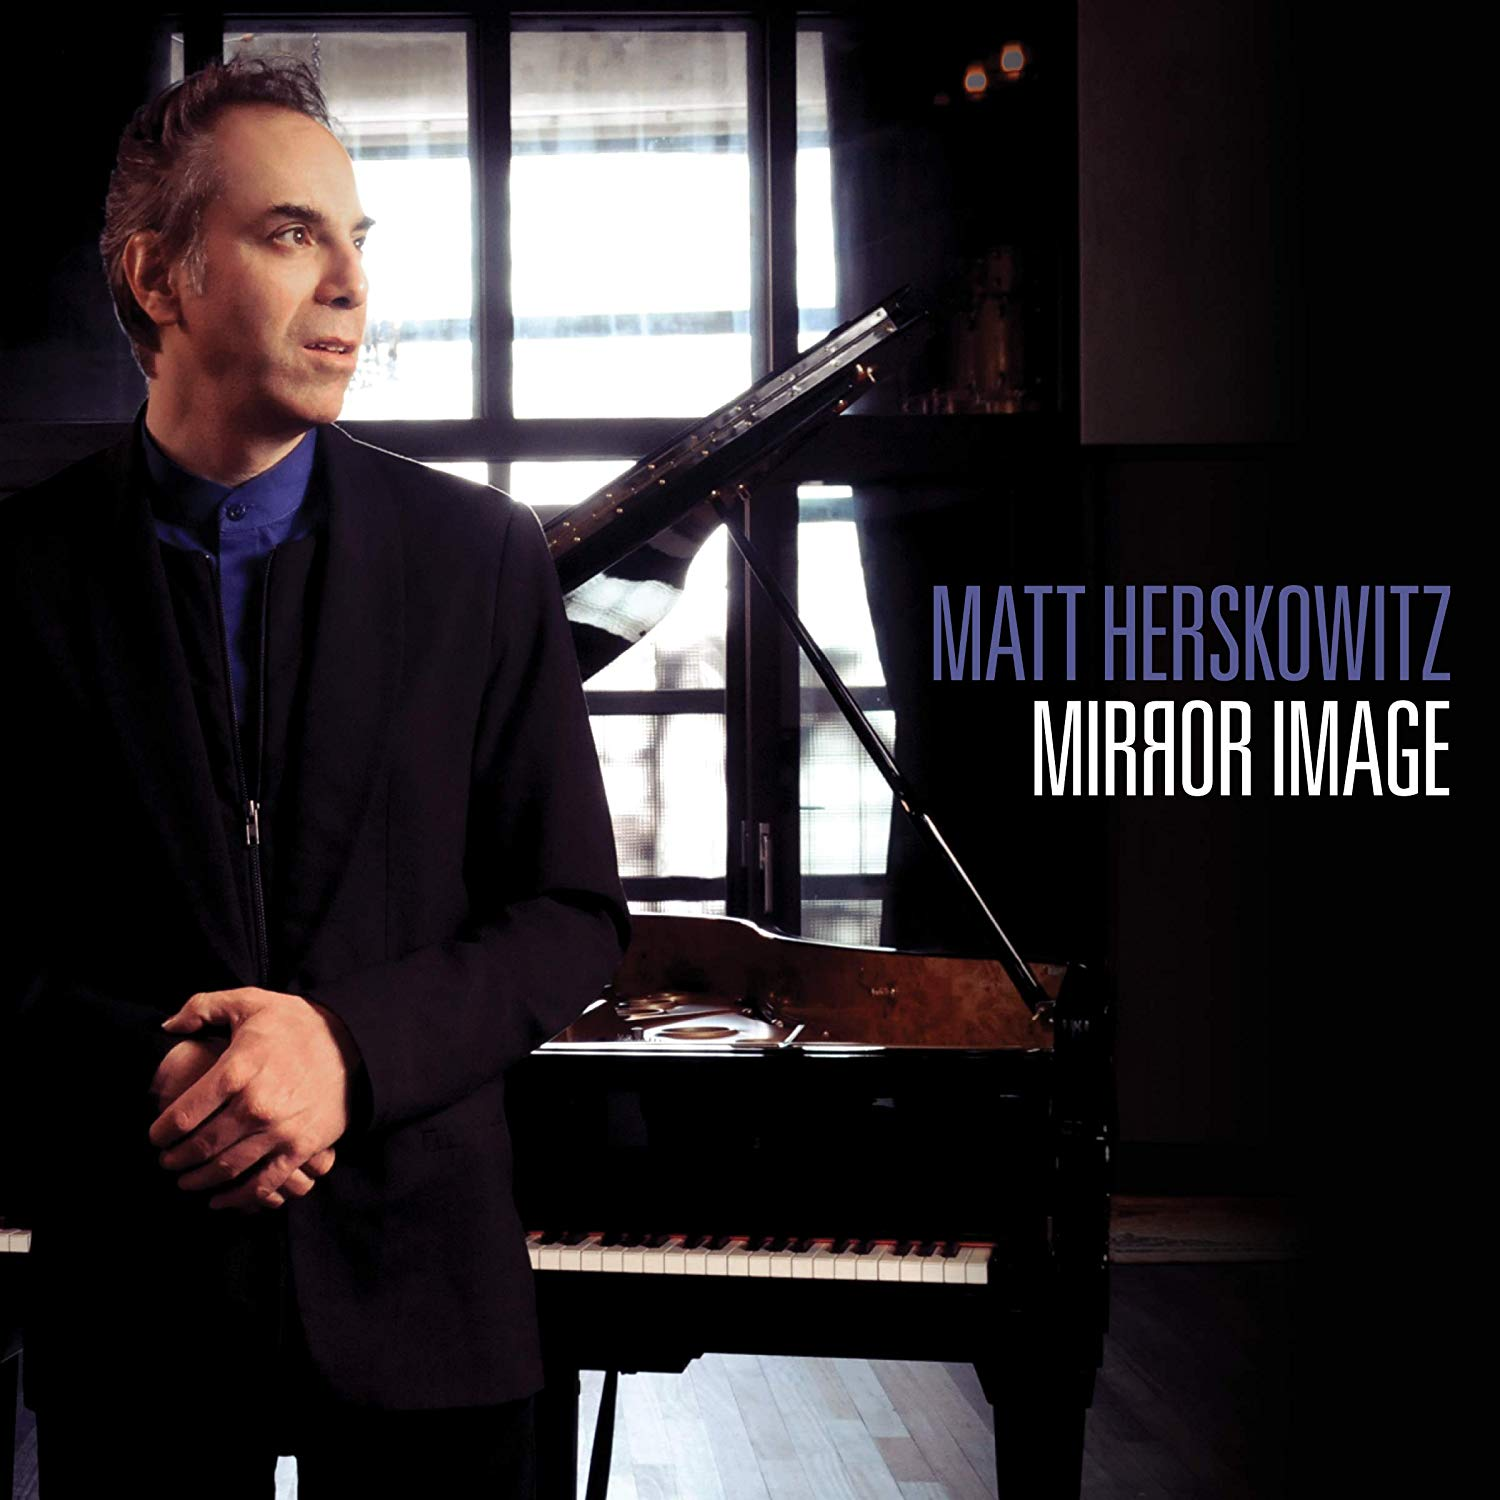 """OUT TODAY: Matt Herskowitz's solo album """"Mirror Image"""" out now on Justin Time"""